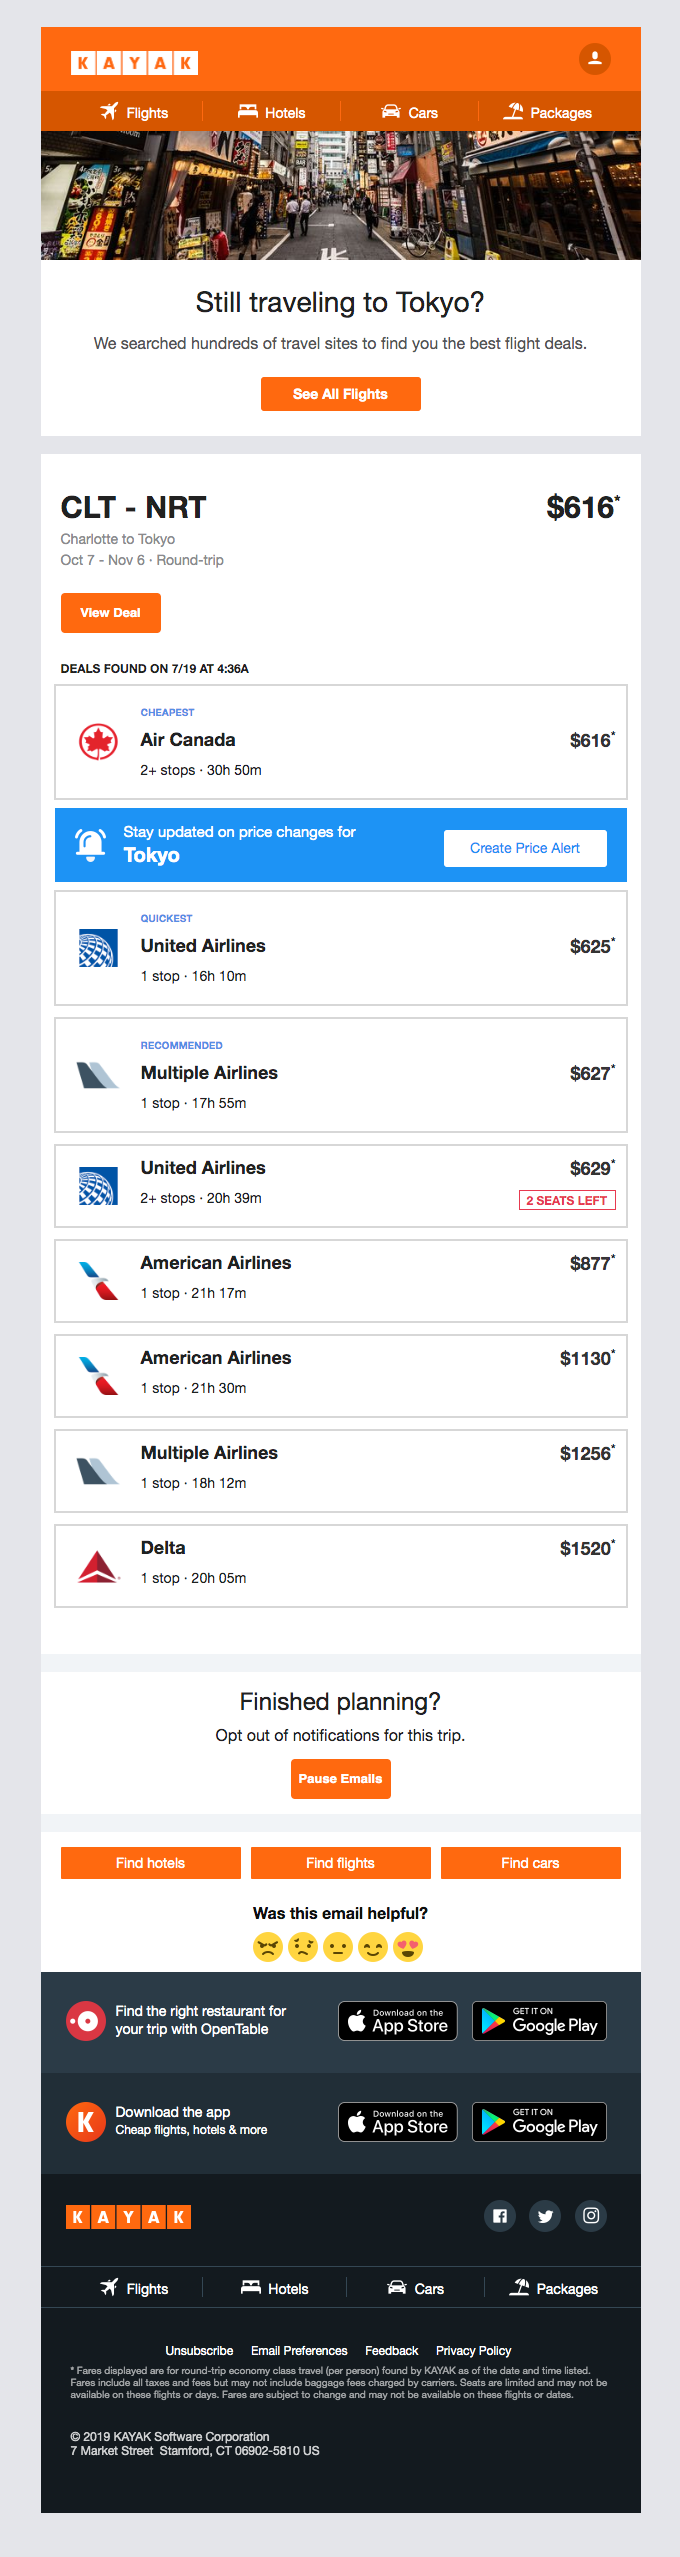 Fly from CLT to NRT for as little as $616